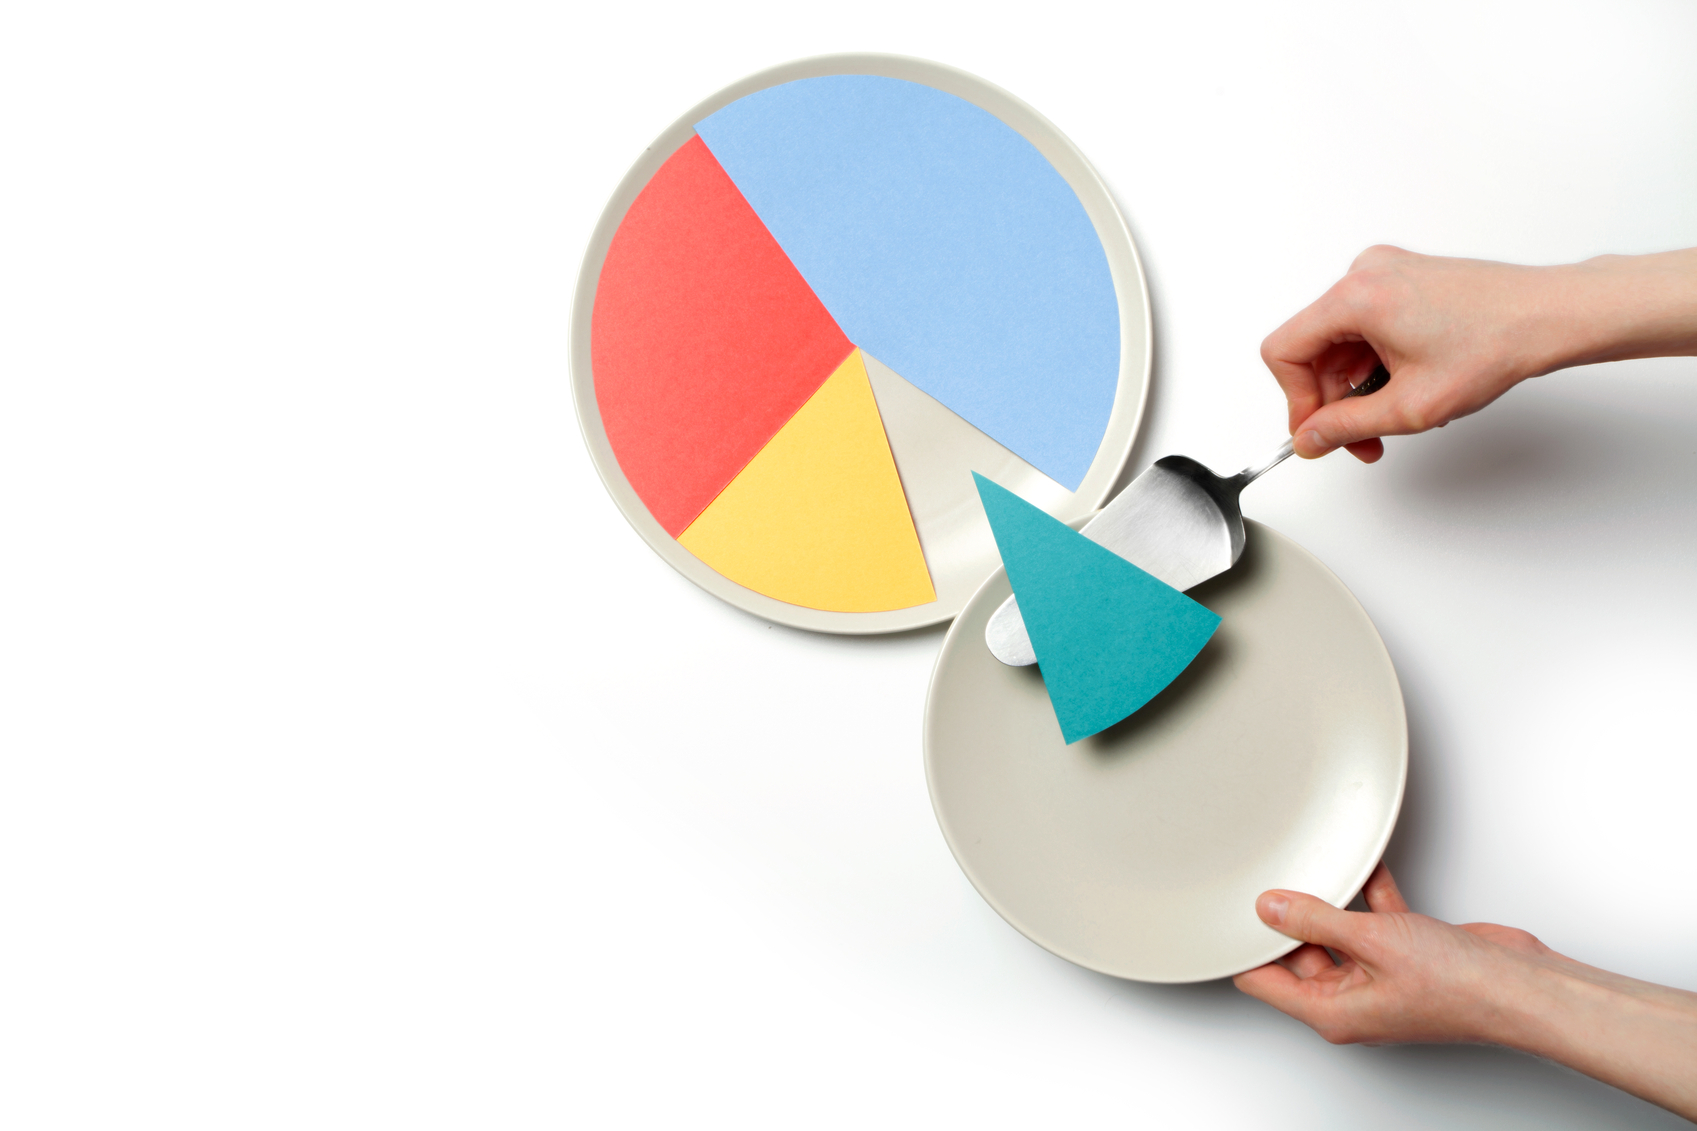 Paper pie chart on a plate